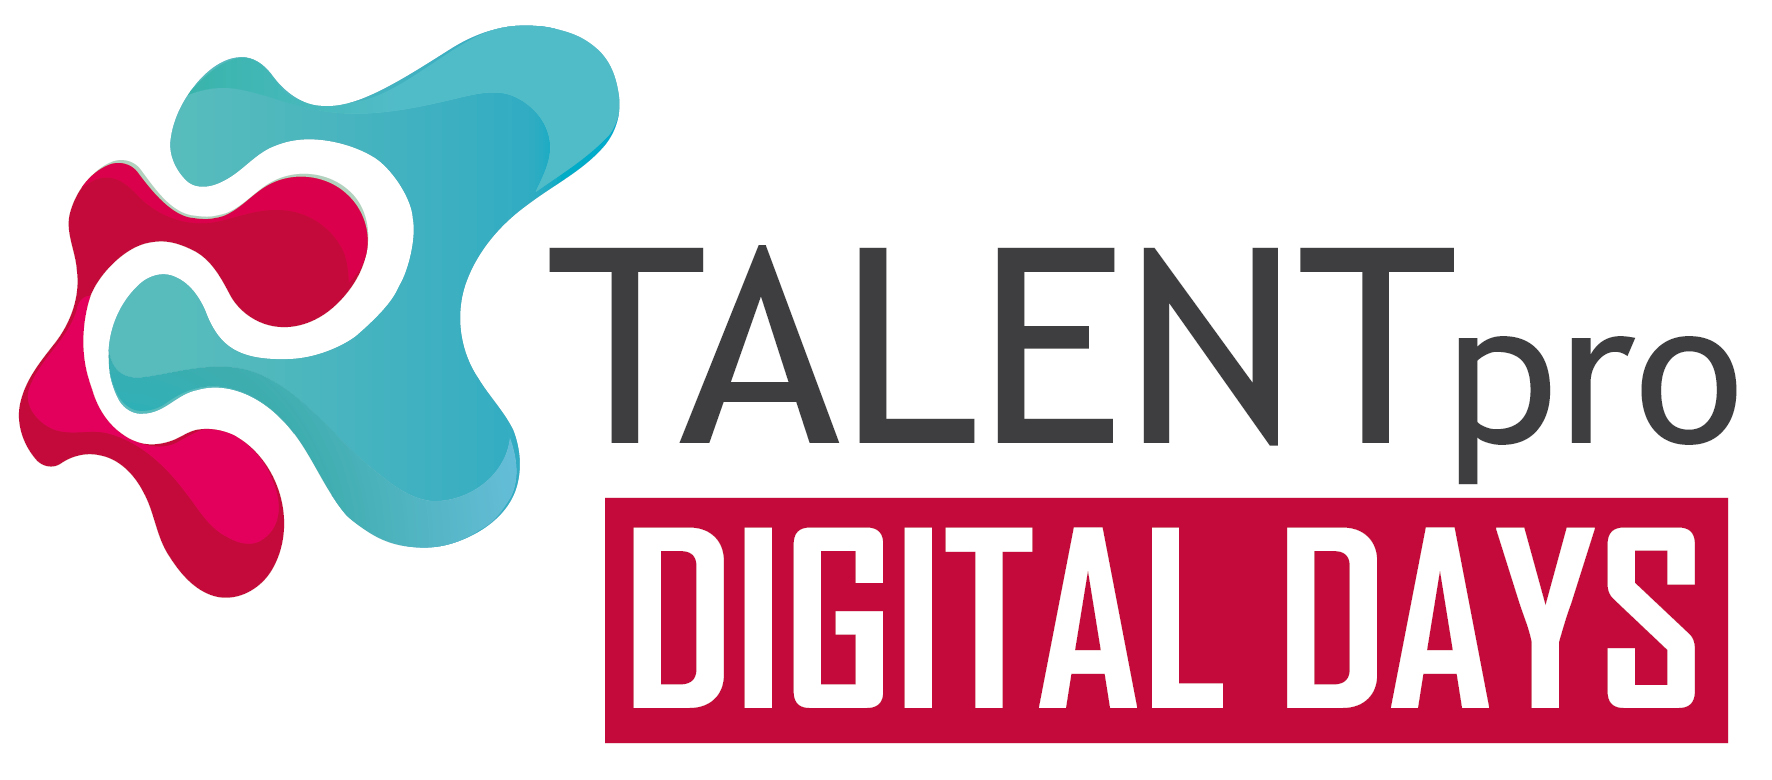 TALENTpro Digital Days